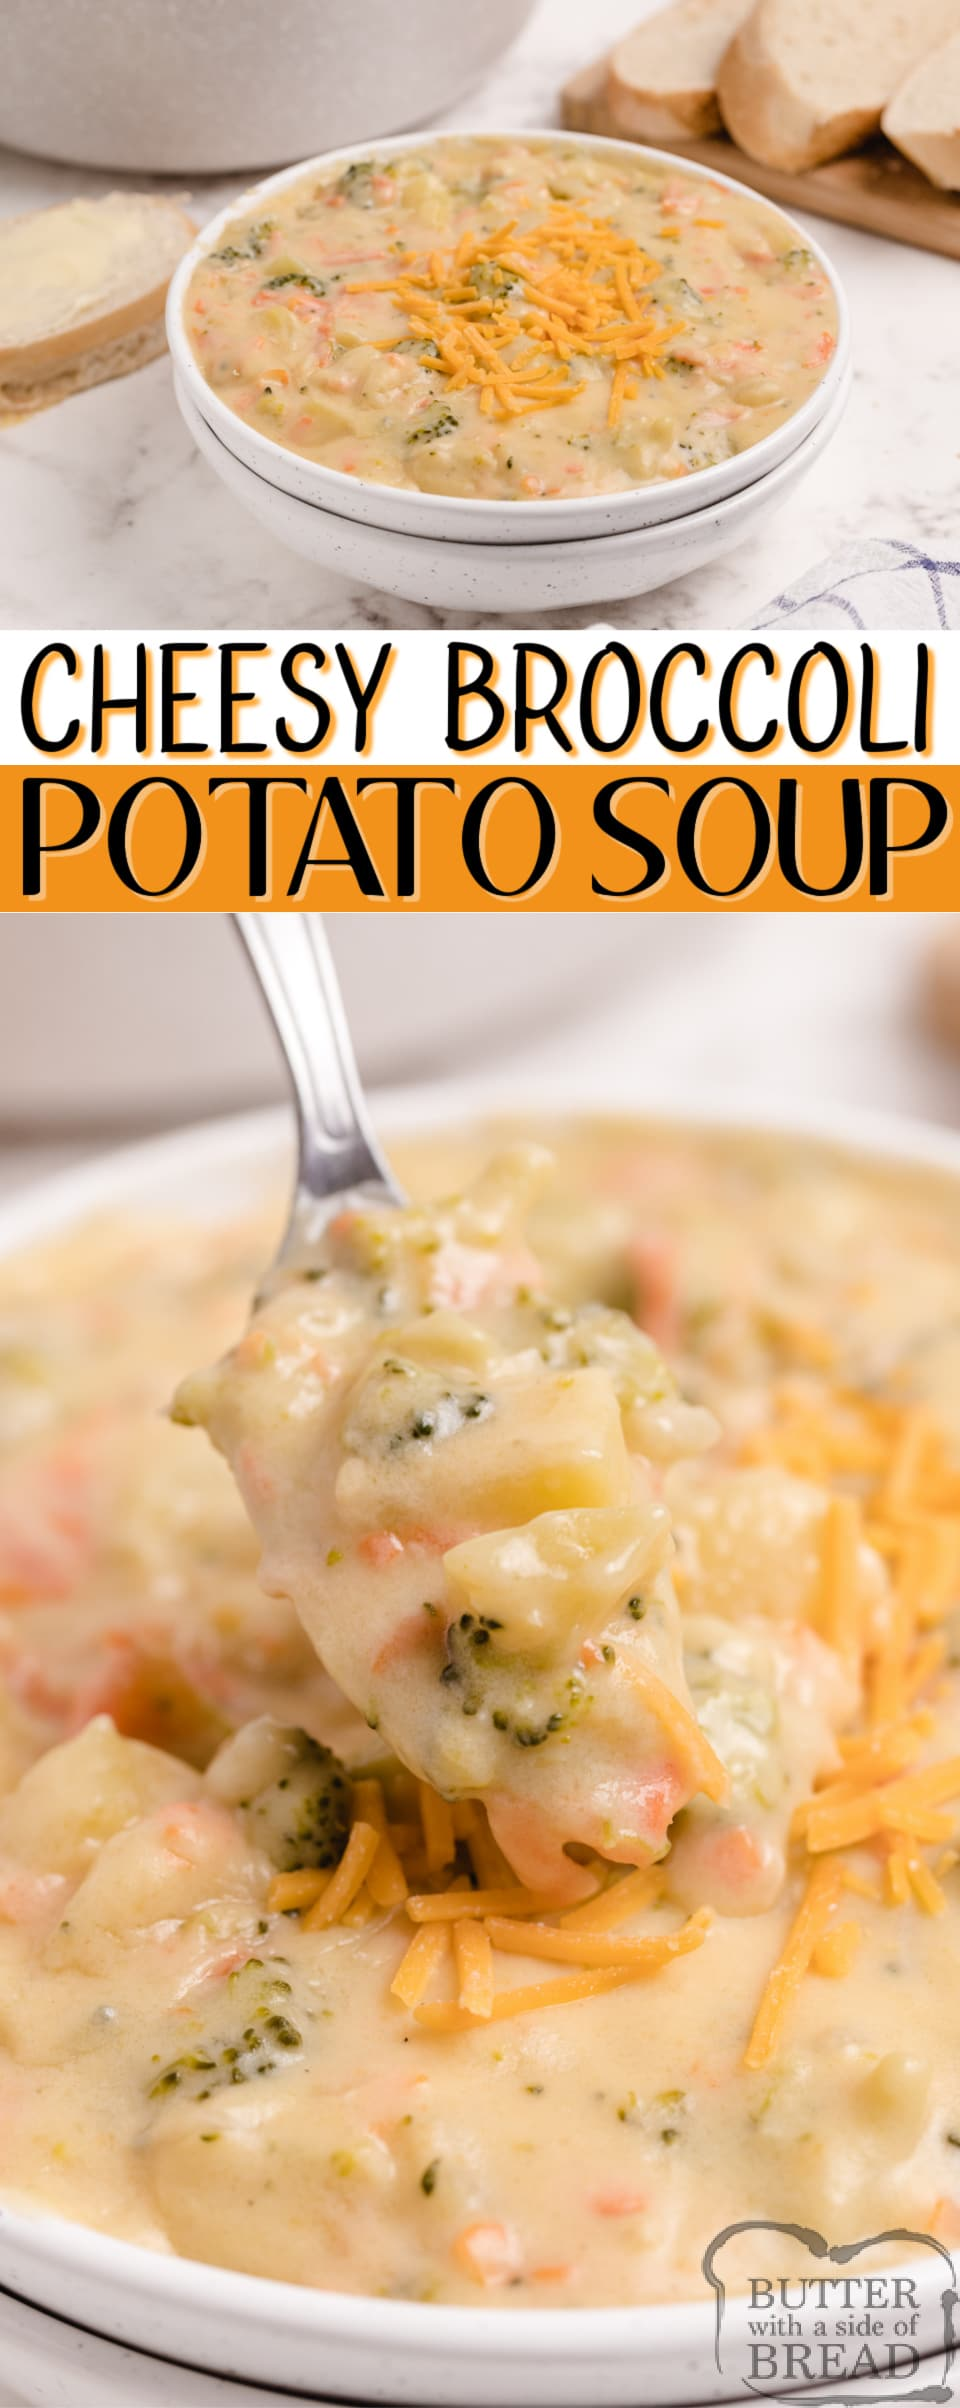 Cheesy Broccoli Potato Soup is creamy, filling and packed with veggies. Delicious potato soup recipe that is easy to prepare and makes for an easy weeknight meal the whole family will love.